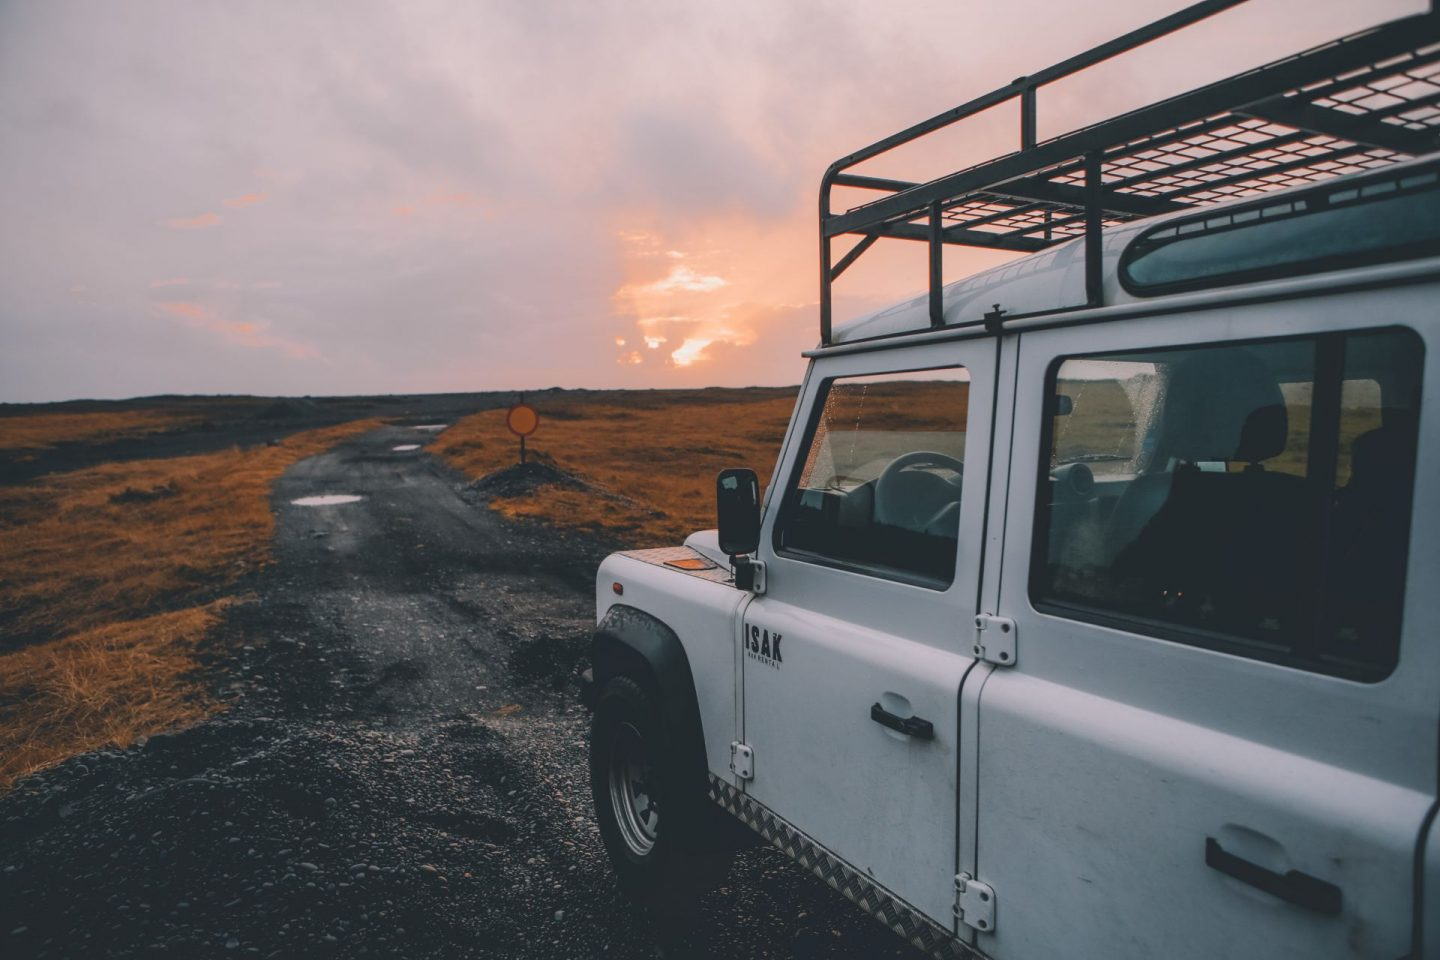 sunset, photography, scenery, travel, wanderlust, white jeep, view over islandic scenery, gorgeous